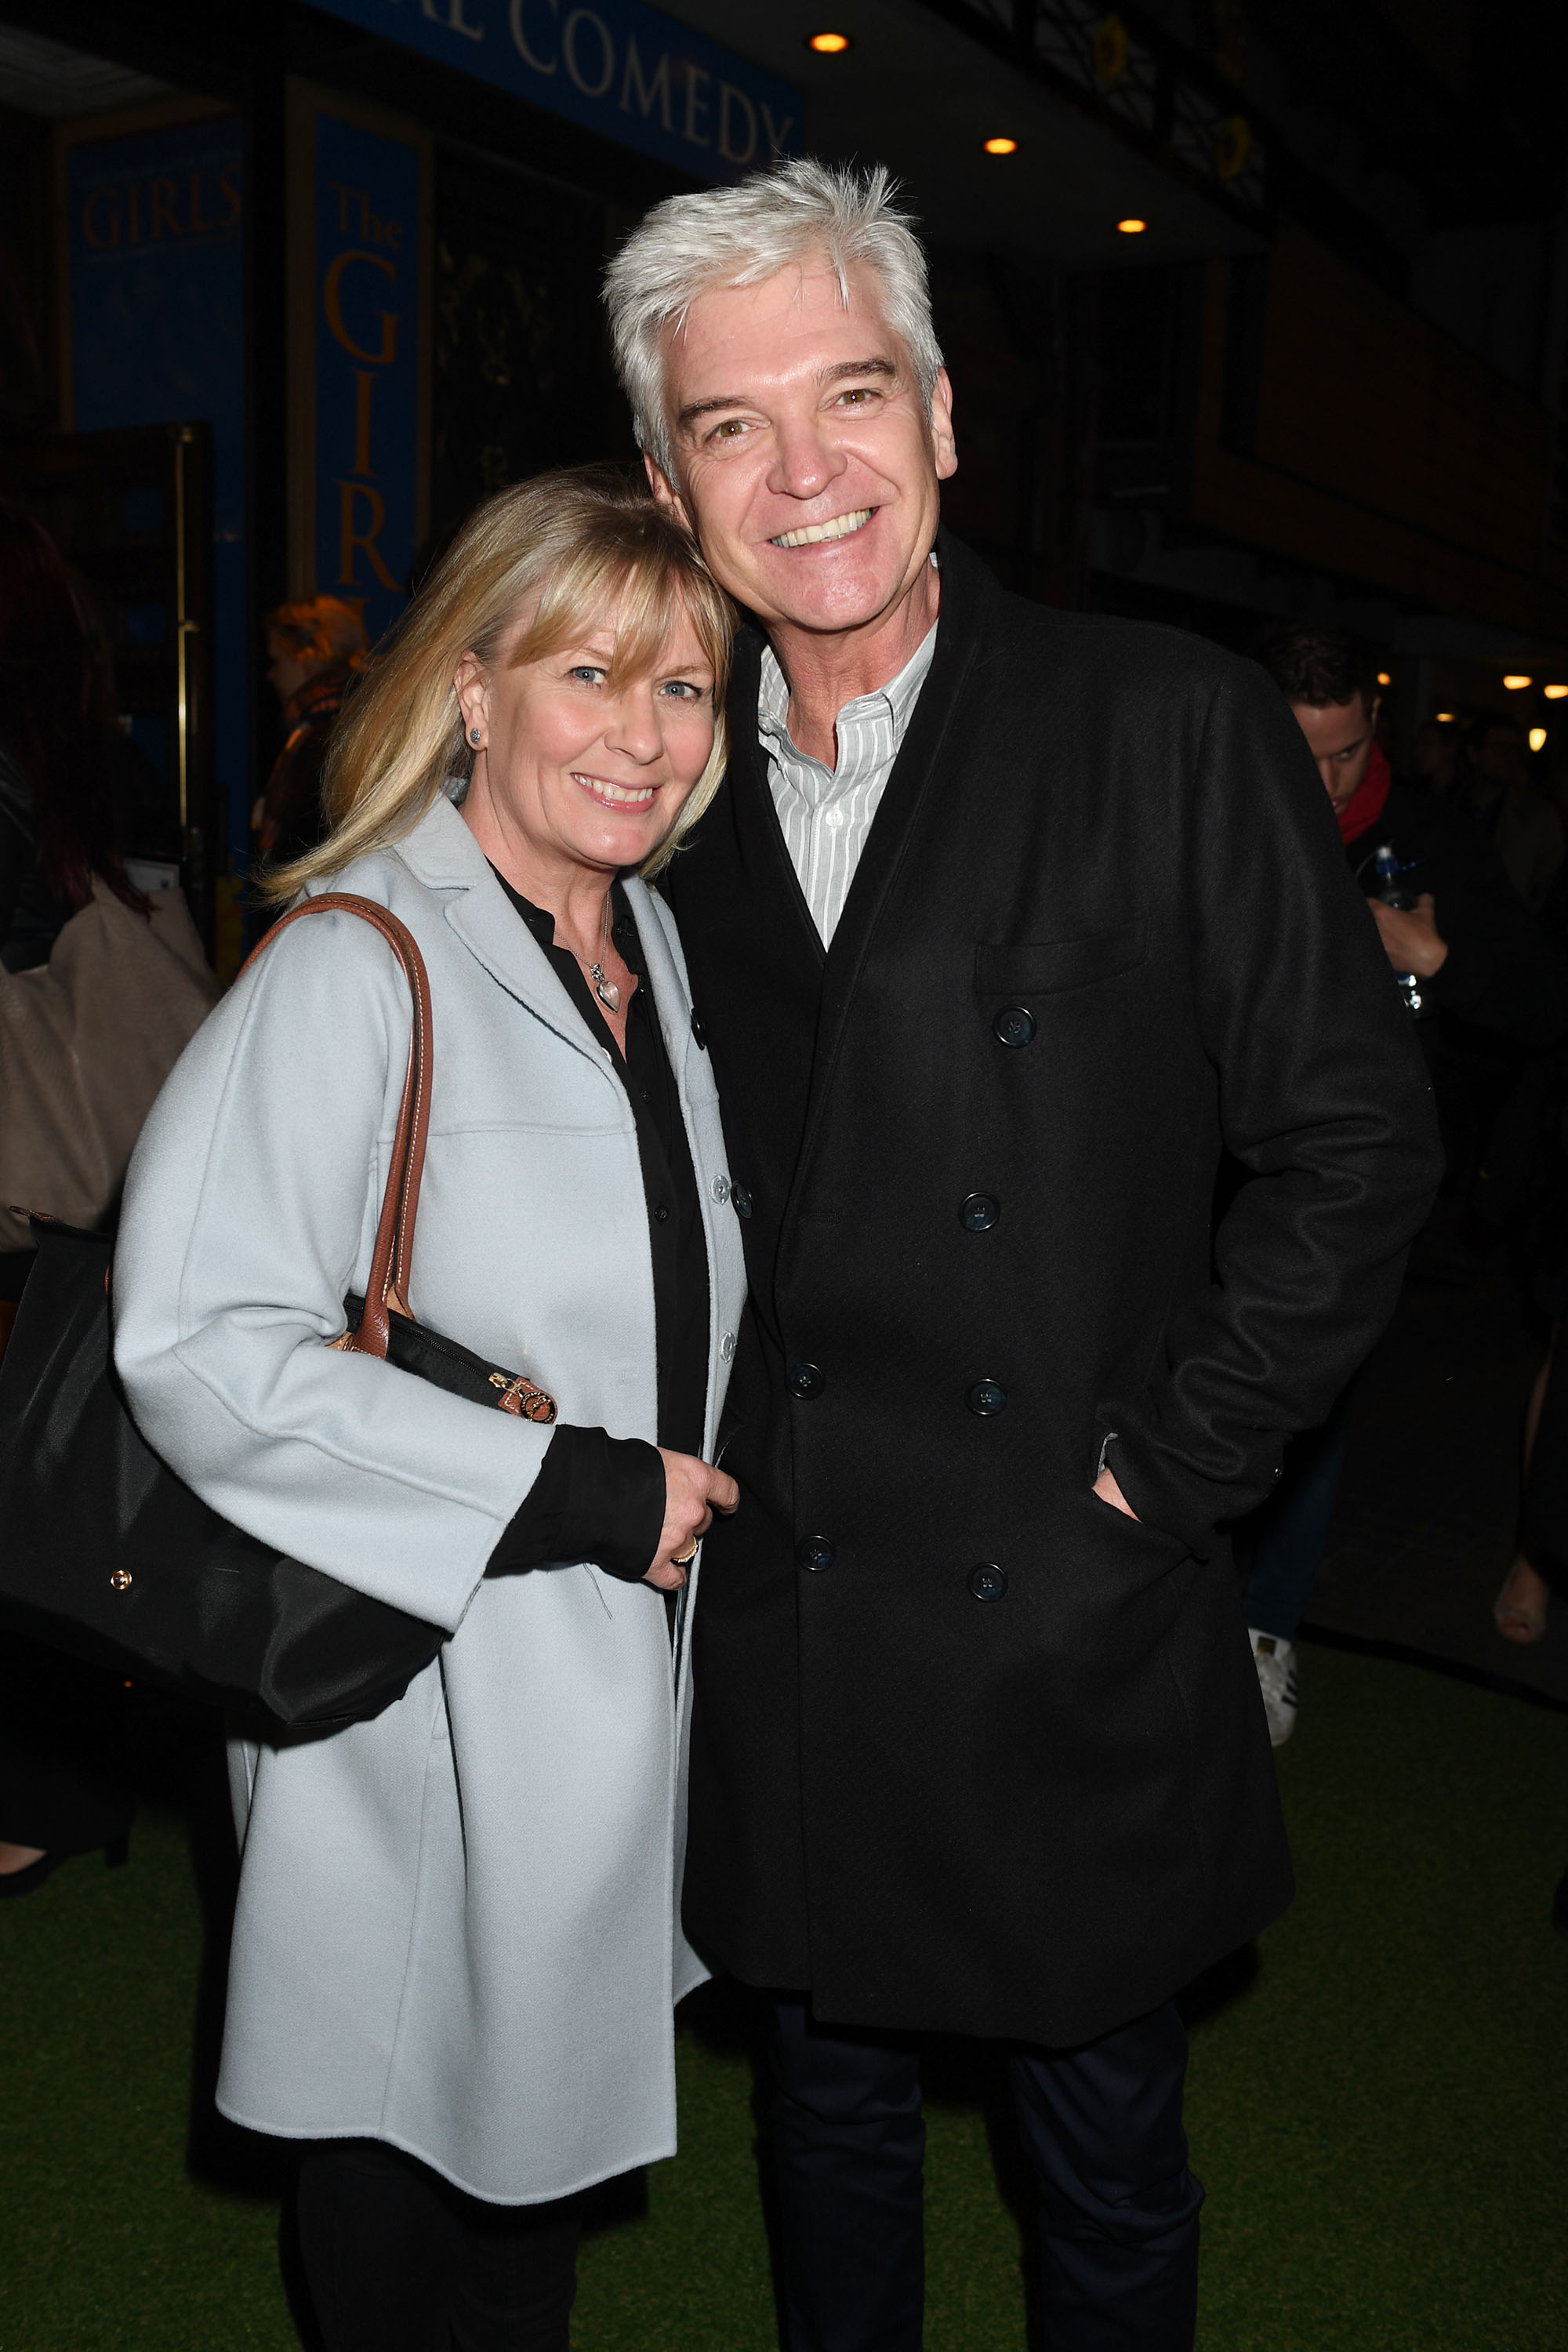 Phillip Schofield With His Wife Stephanie Lowe